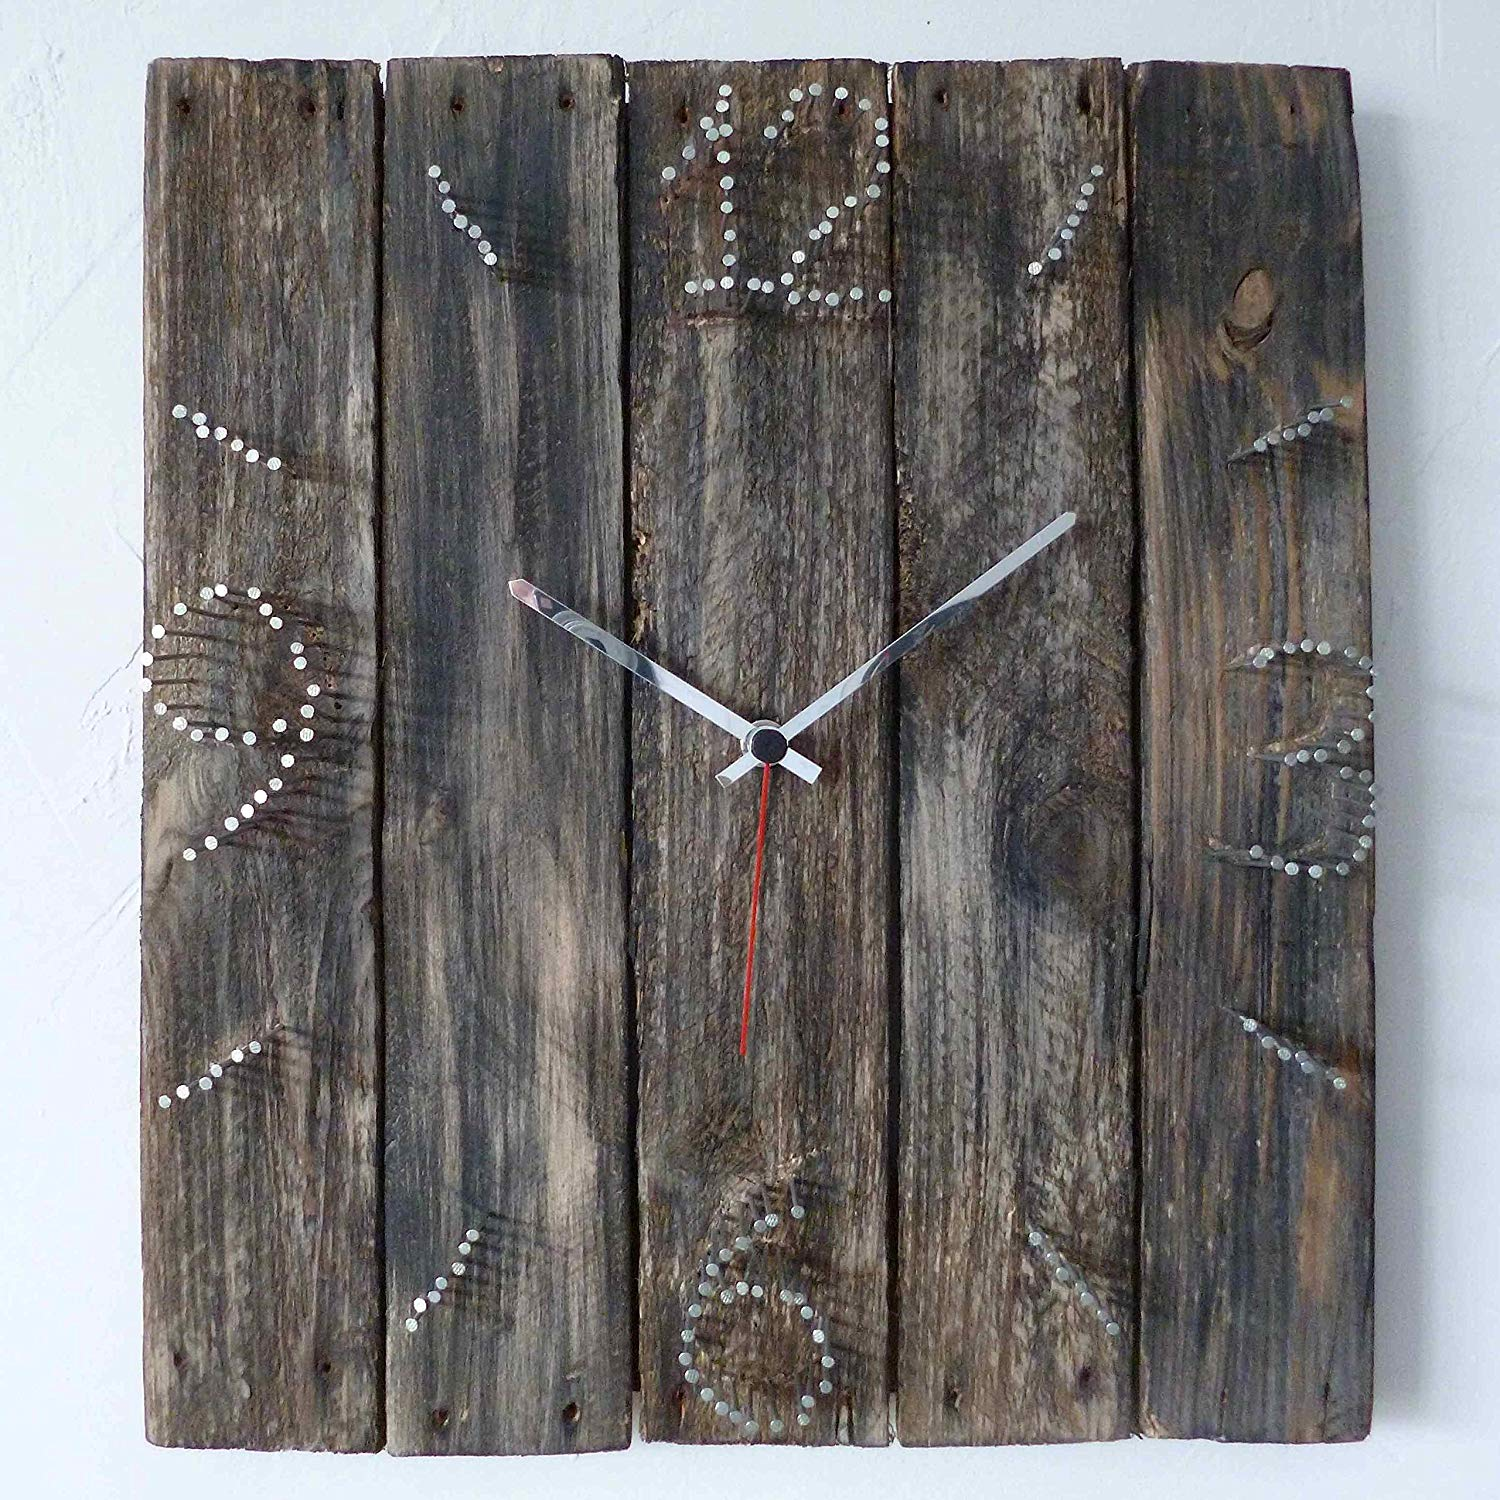 715108ecaf6 Get Quotations · Large Decorative Wall Clock 15-inch - Wood Rustic Original  - Silent Non Ticking Quartz